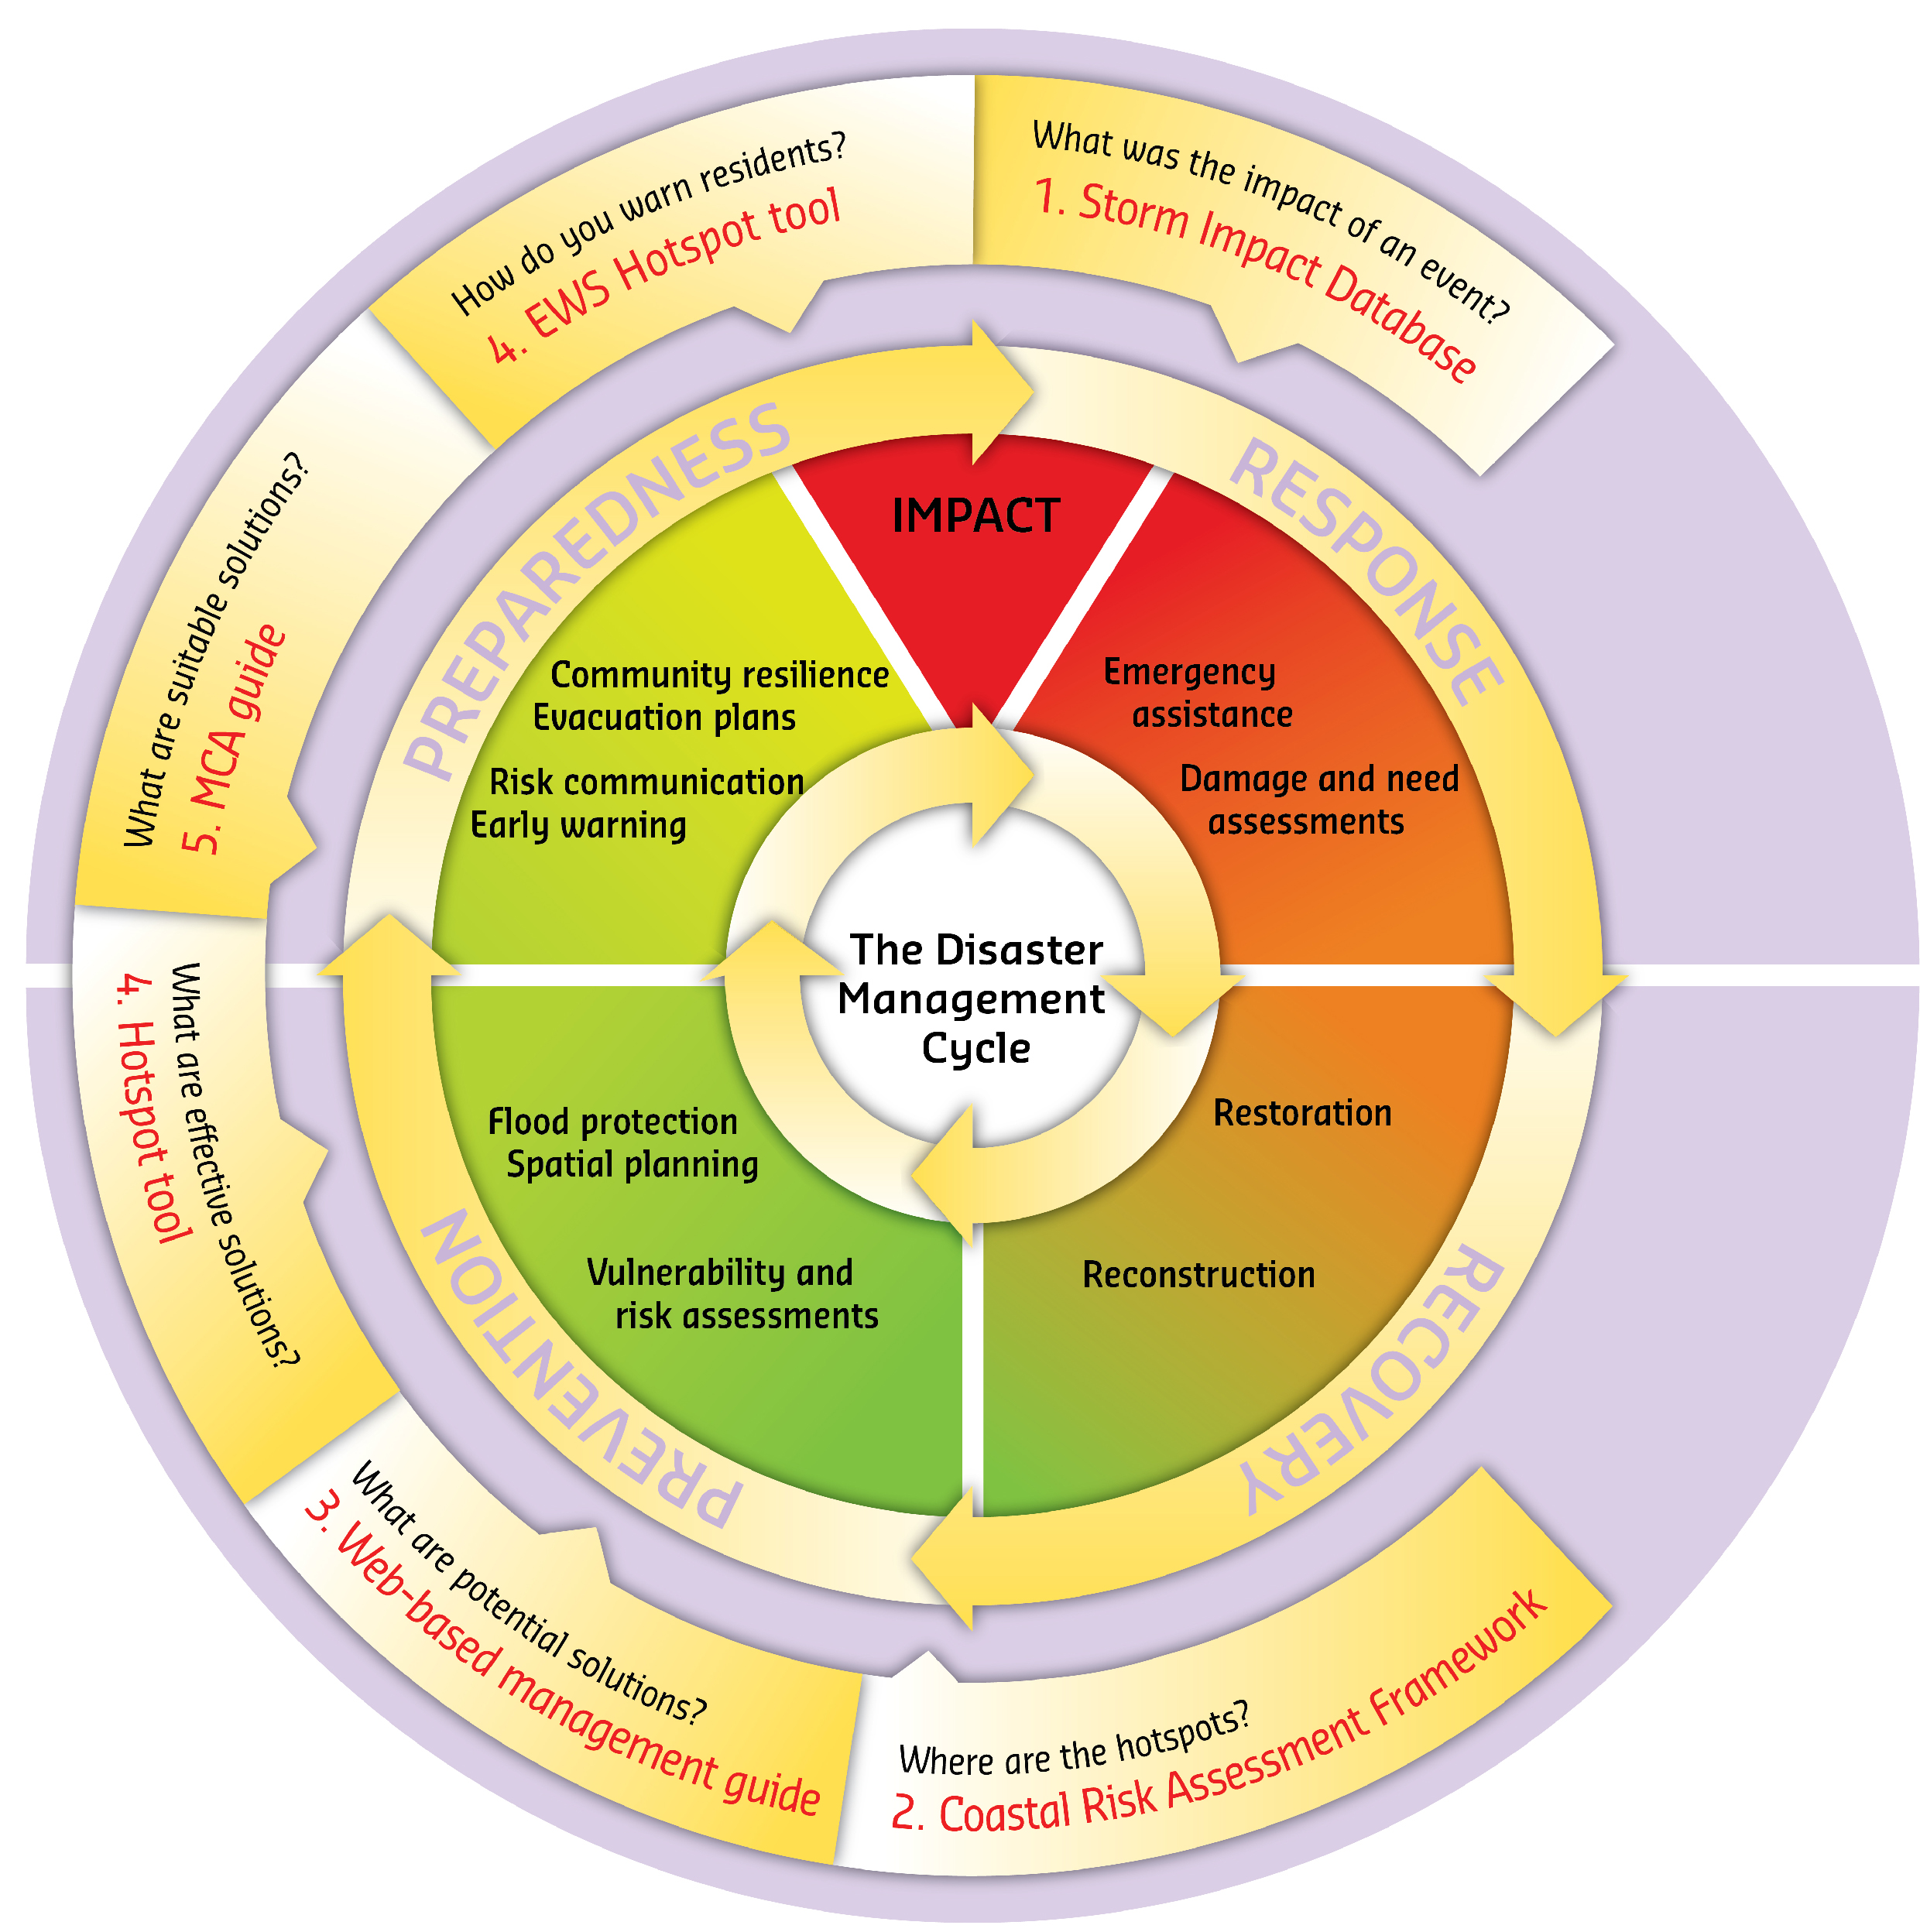 The Disaster Management Cycle, describing the Response, Recovery, Prevention and Preparedness stages, and the place of the RISC-KIT tools in this cycle (by von Dongeren et al. (forthcoming) and adapted from an original by and courtesy of Mr. C. van de Guchte, Deltares)